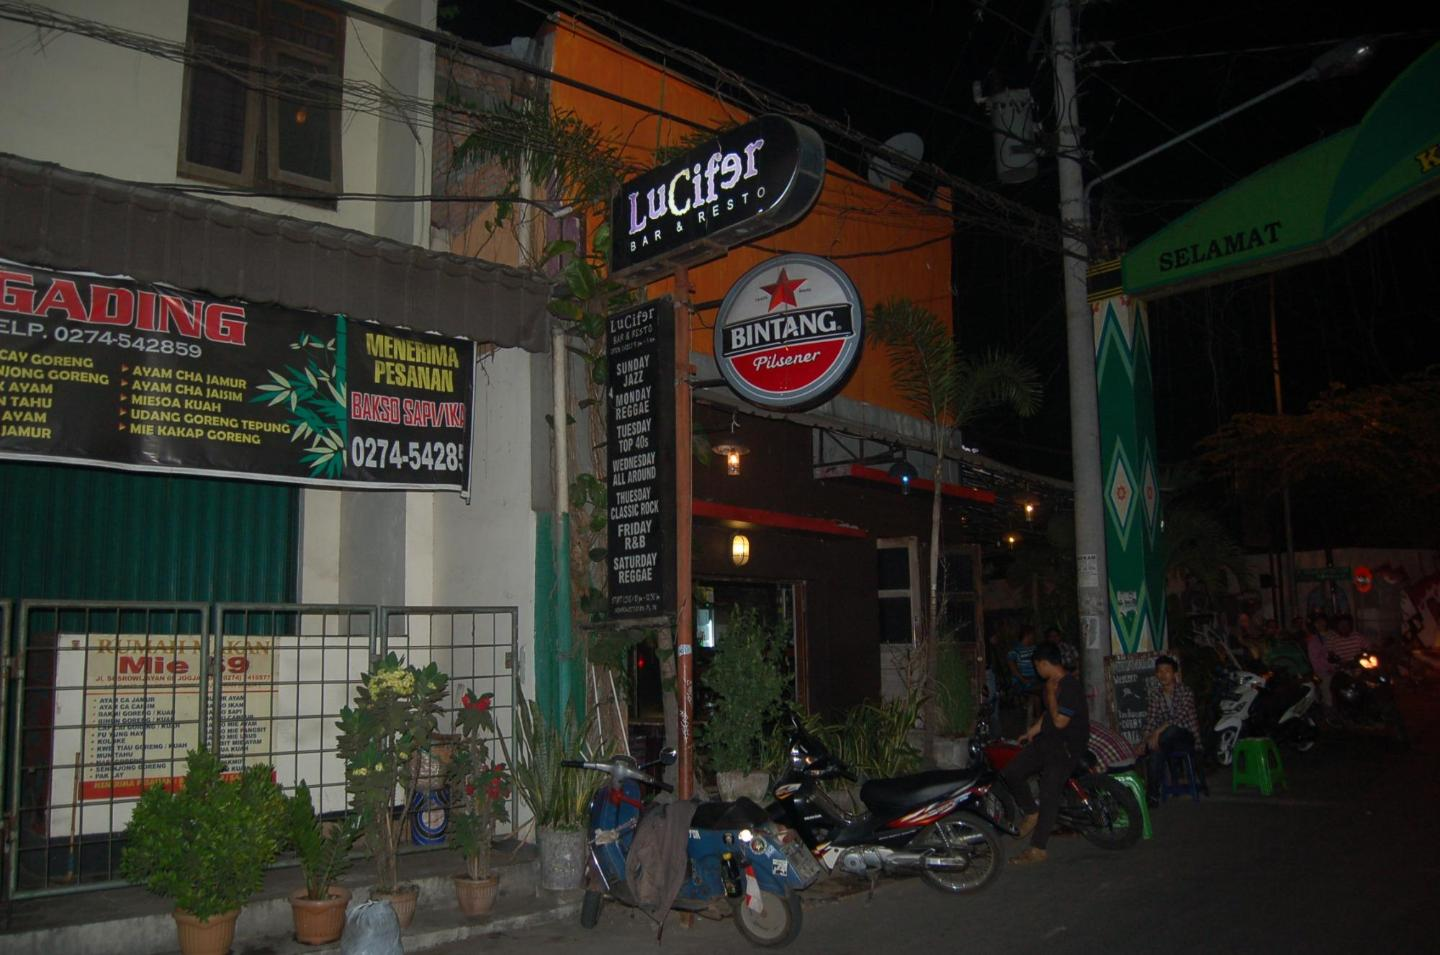 Suasana di Lucifer Bar & Resto